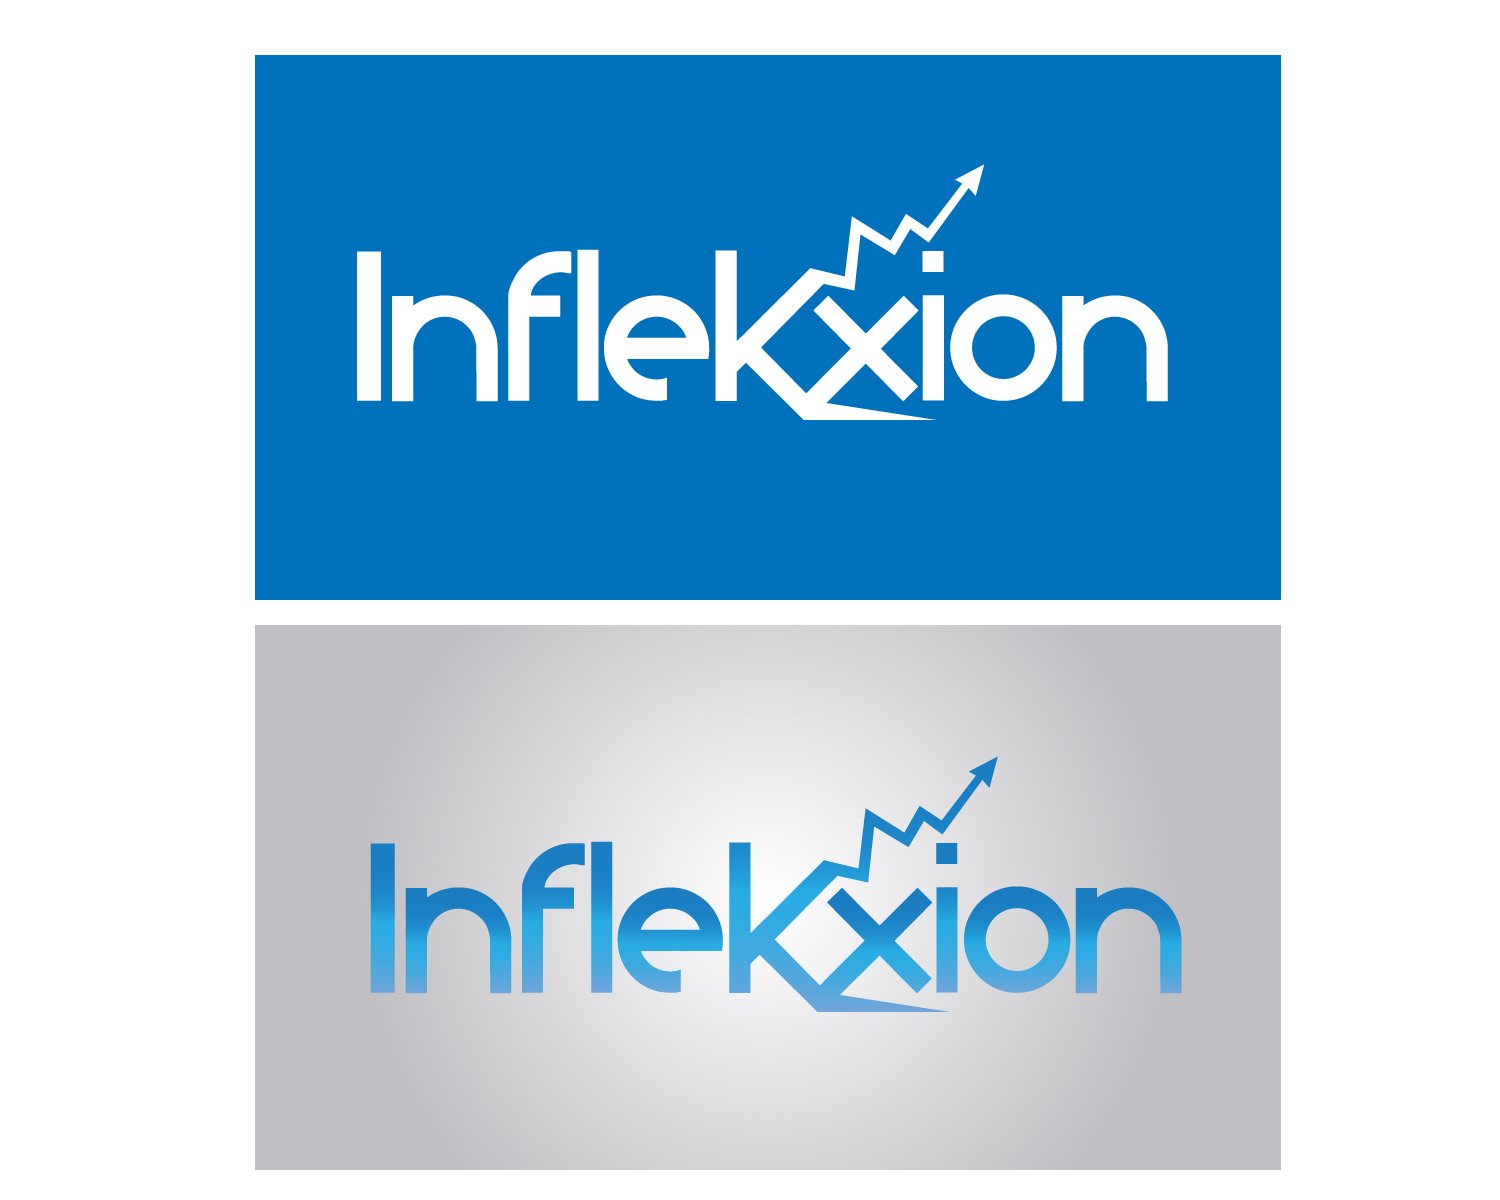 Logo Design by Jagdeep Singh - Entry No. 177 in the Logo Design Contest Professional Logo Design for Inflekxion.